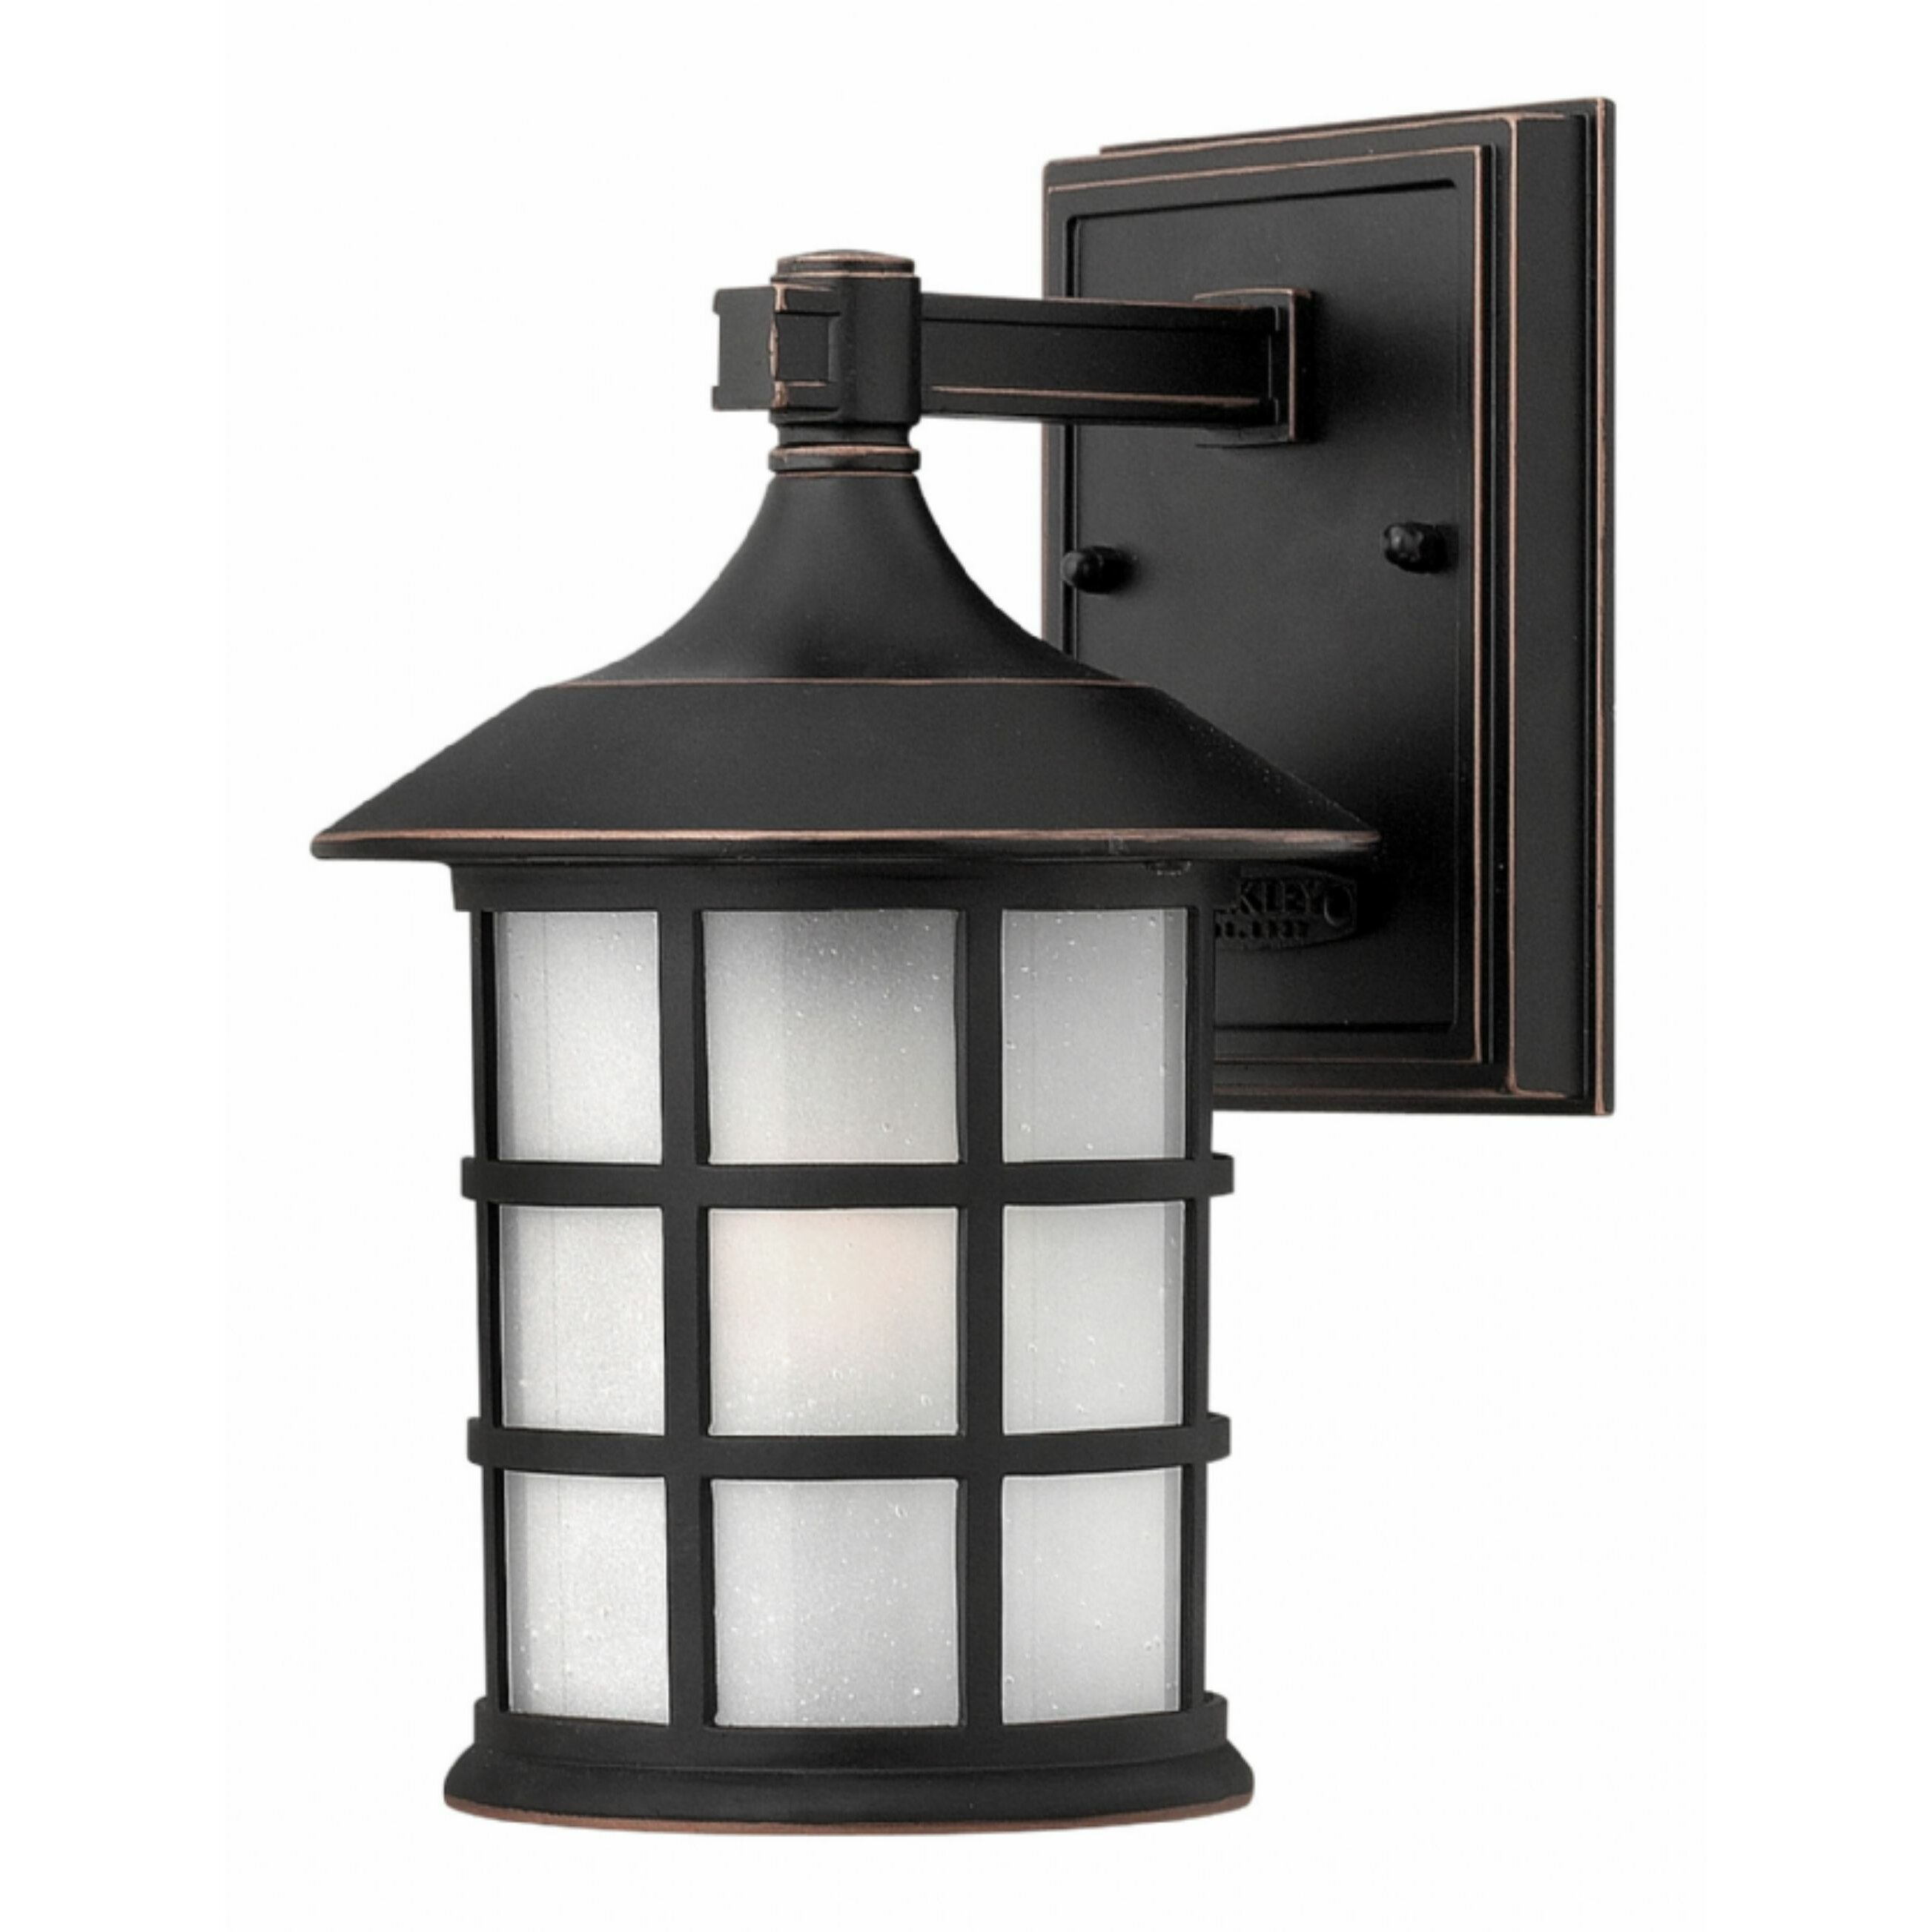 Lantern Wall Light Outdoor : Hinkley Lighting Freeport 1 Light Outdoor Wall Lantern & Reviews Wayfair